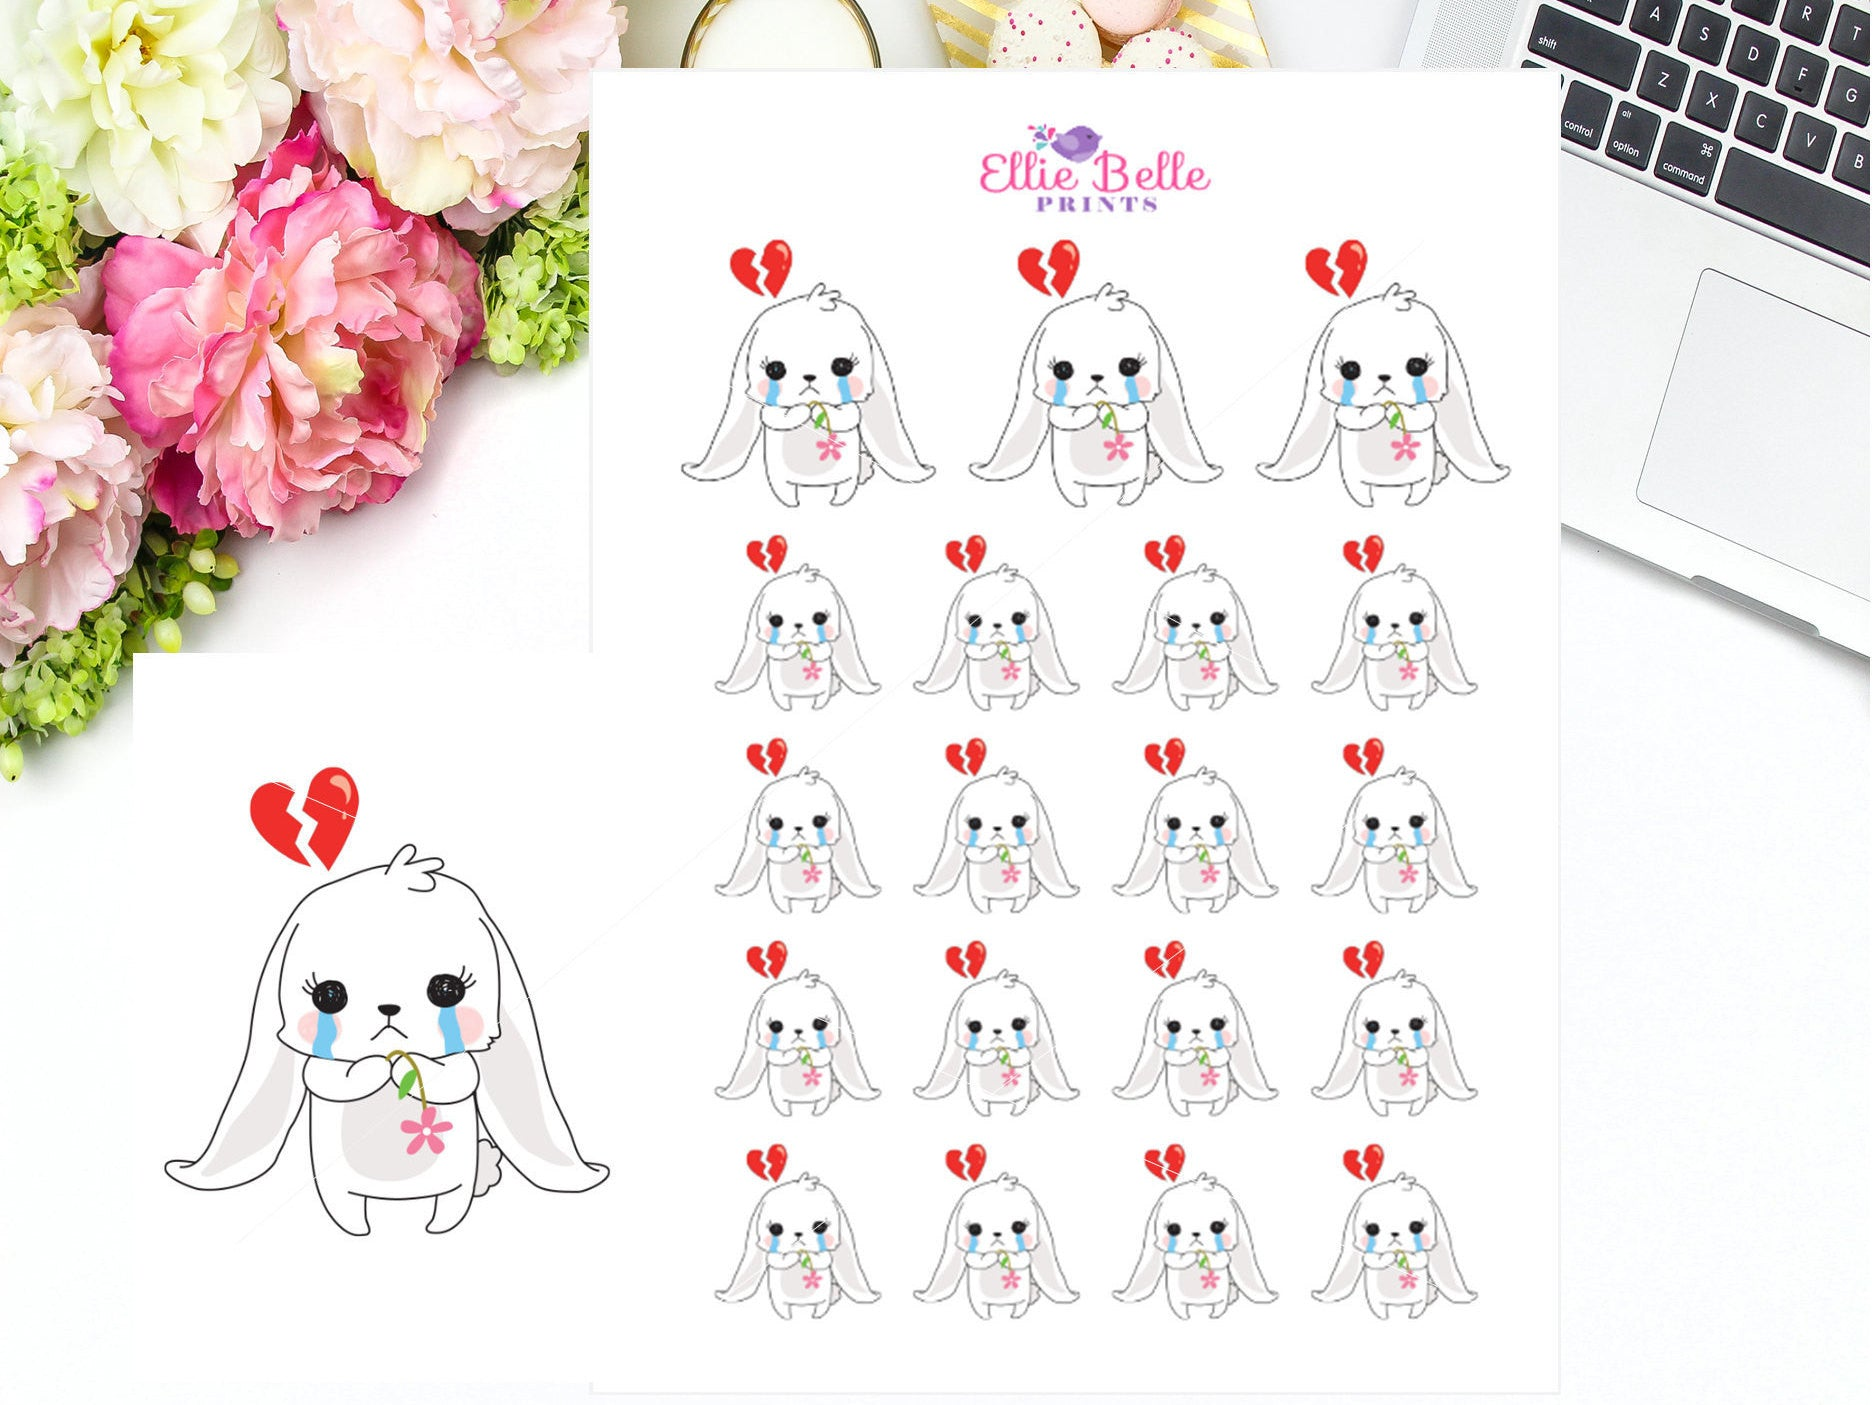 Sad / Upset Sticker - Bunny Rabbit Collection